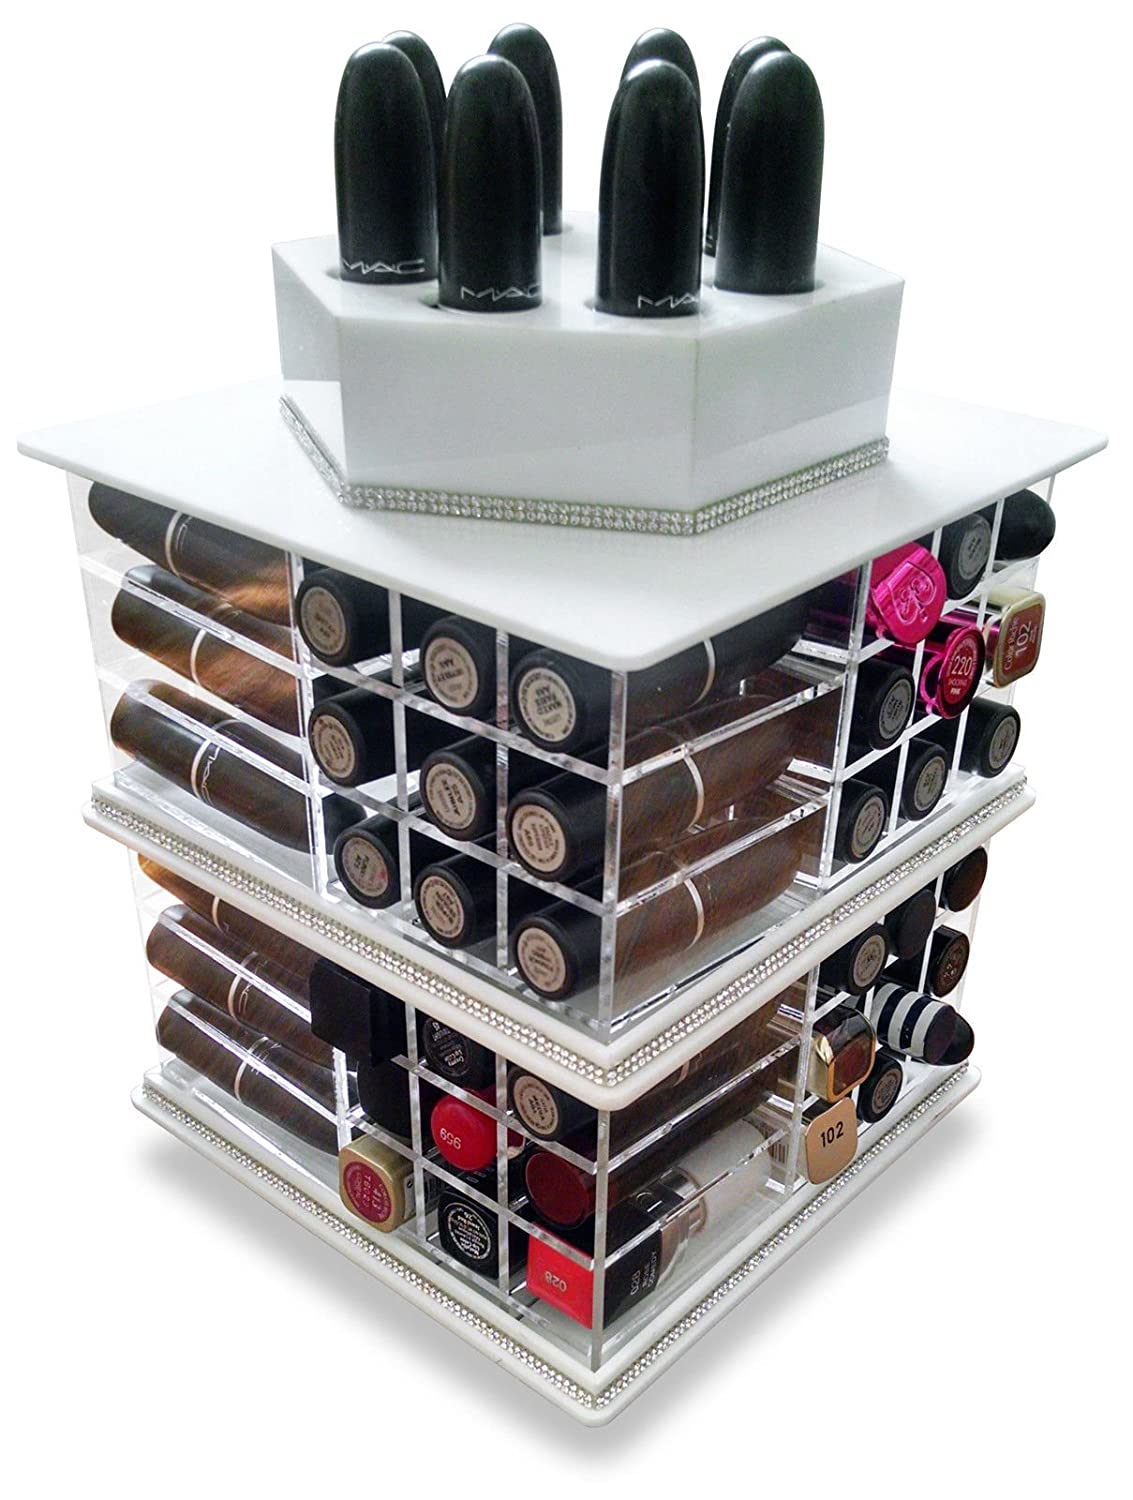 Oi LabelsTM Clear Acrylic Rotating / Spinning Lipstick Holder Tidy  Organizer - Can Hold up to 80 Lipsticks (White): Amazon.co.uk: DIY & Tools